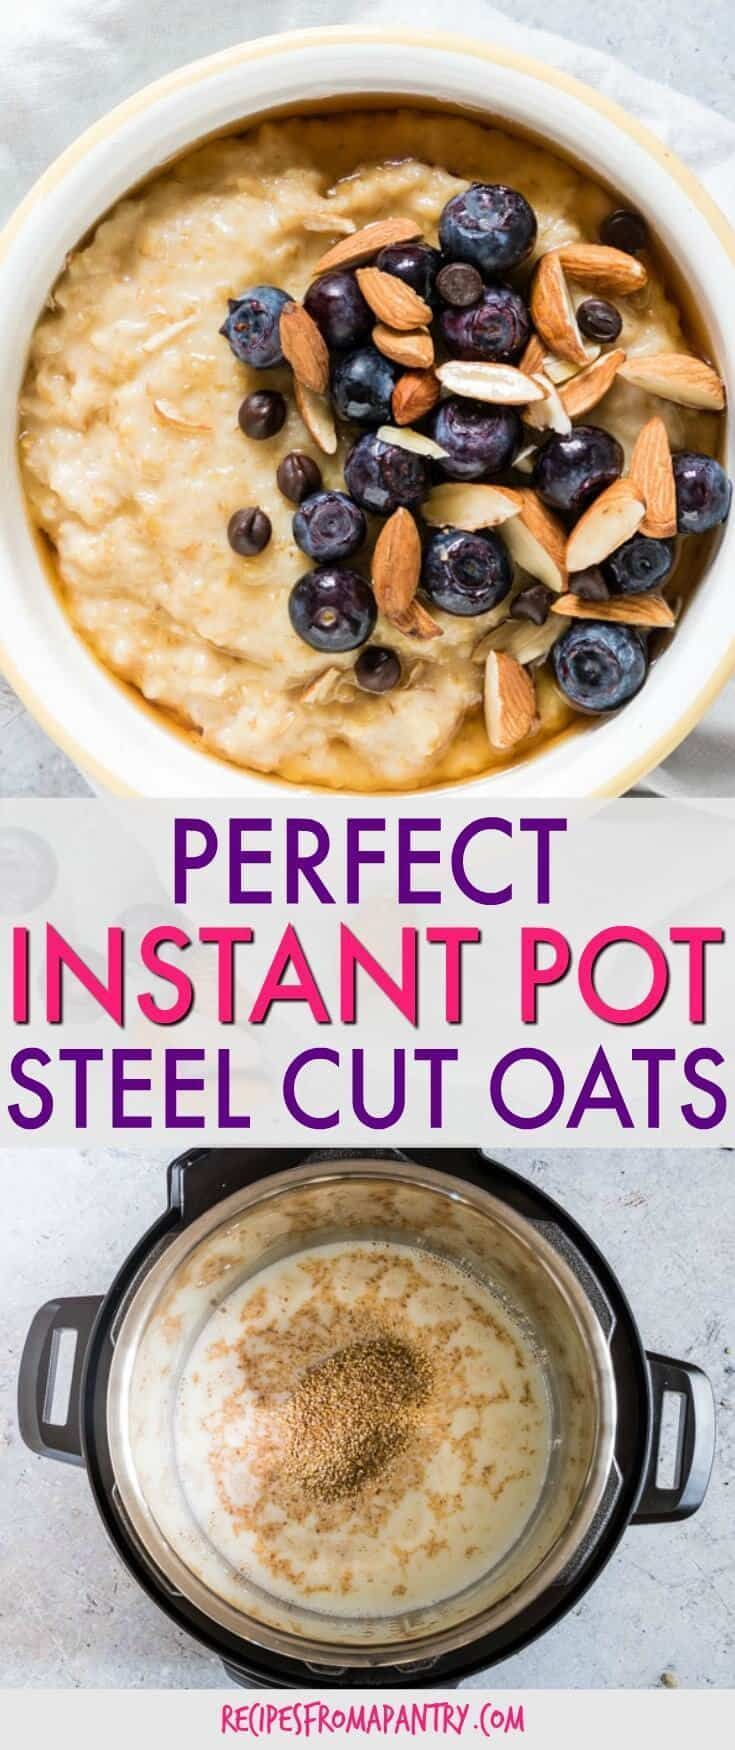 This EASY Instant Pot Steel Cut Oats recipe will make you excited for breakfast. Ready in just about 30 mins total, it makes a perfect Instant Pot breakfast recipe. #oats #oatmeal #instantpot #breakfast #steelcutoats #steelcutoatmeal #instantpotsteelcutoats via @recipespantry